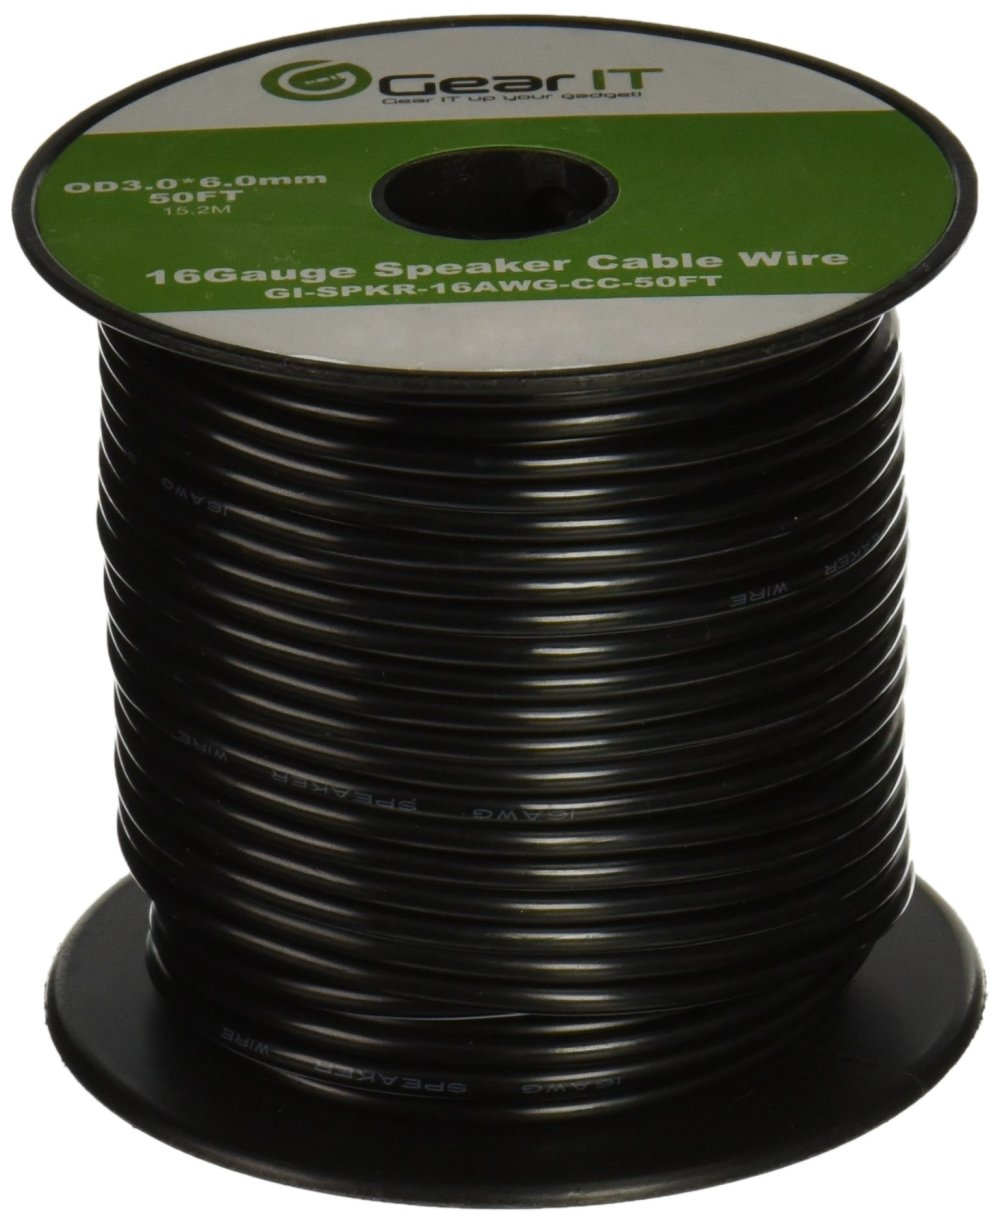 medium resolution of get quotations 16awg speaker wire gearit pro series 16 gauge speaker wire cable 50 feet